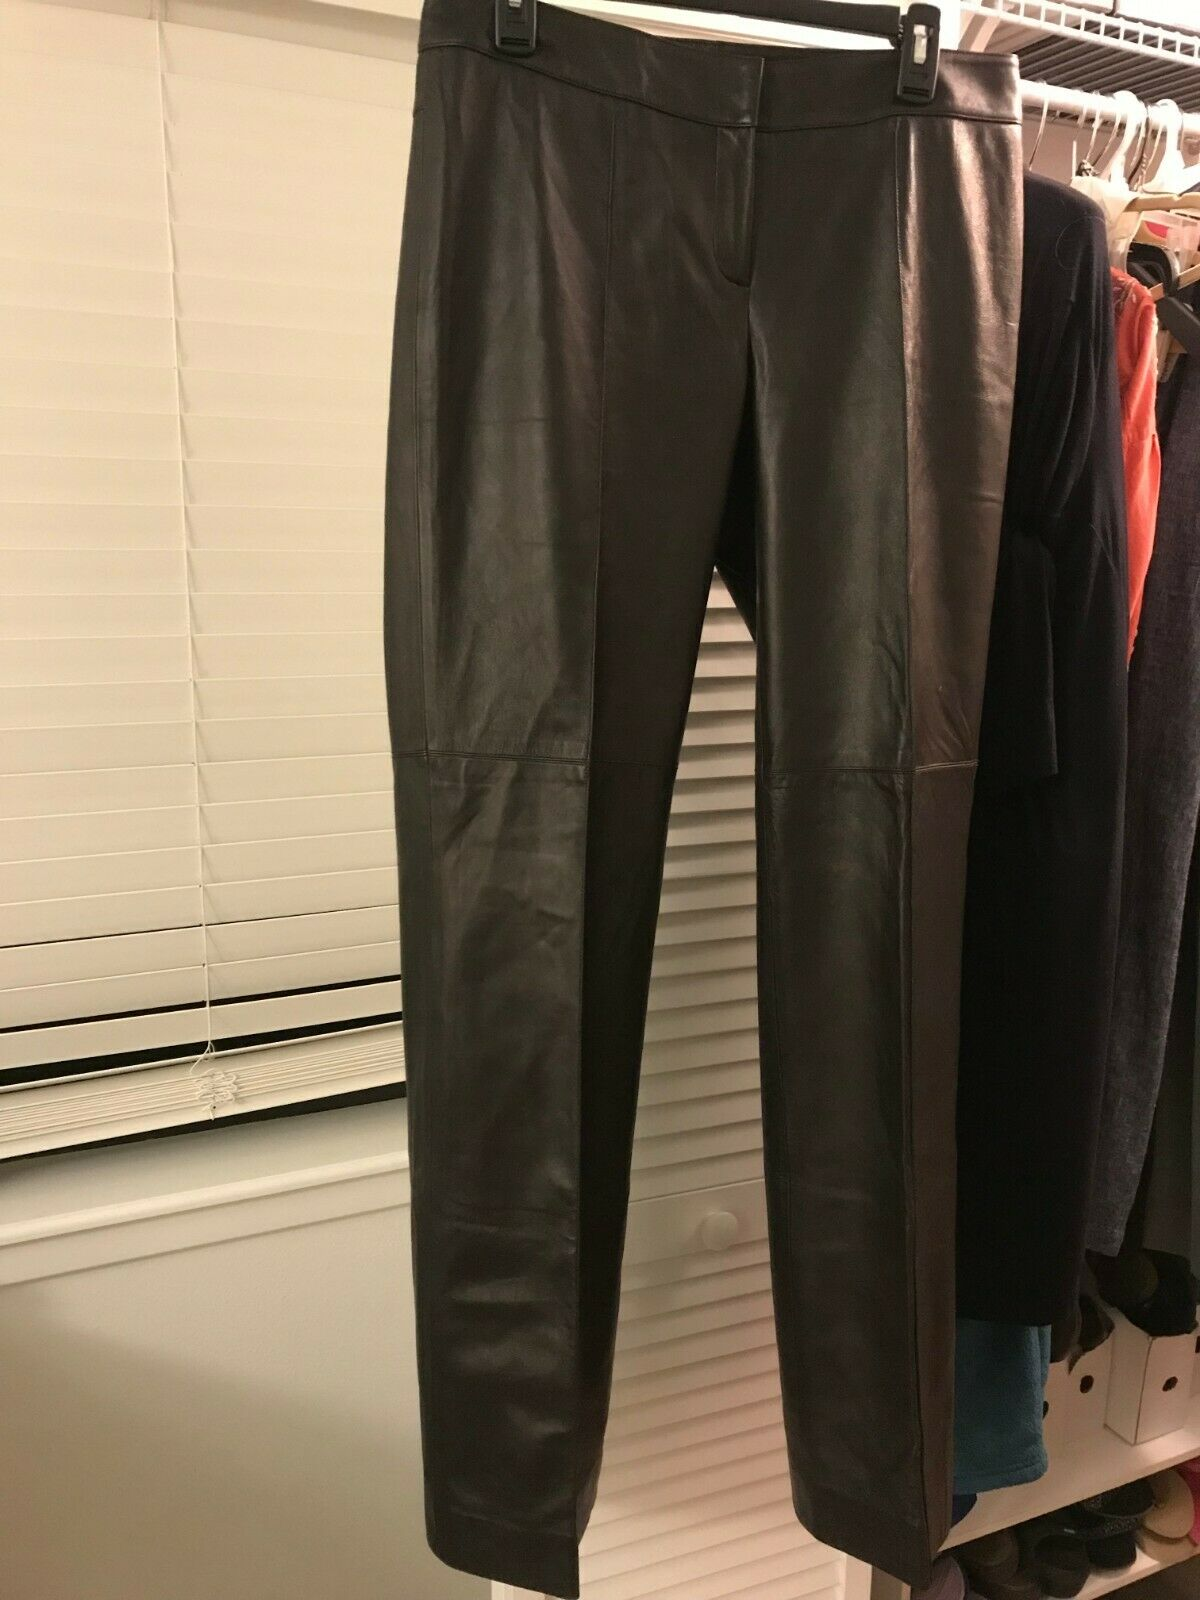 CARLISLE Leather Pants Brown damen 10 Fully lined